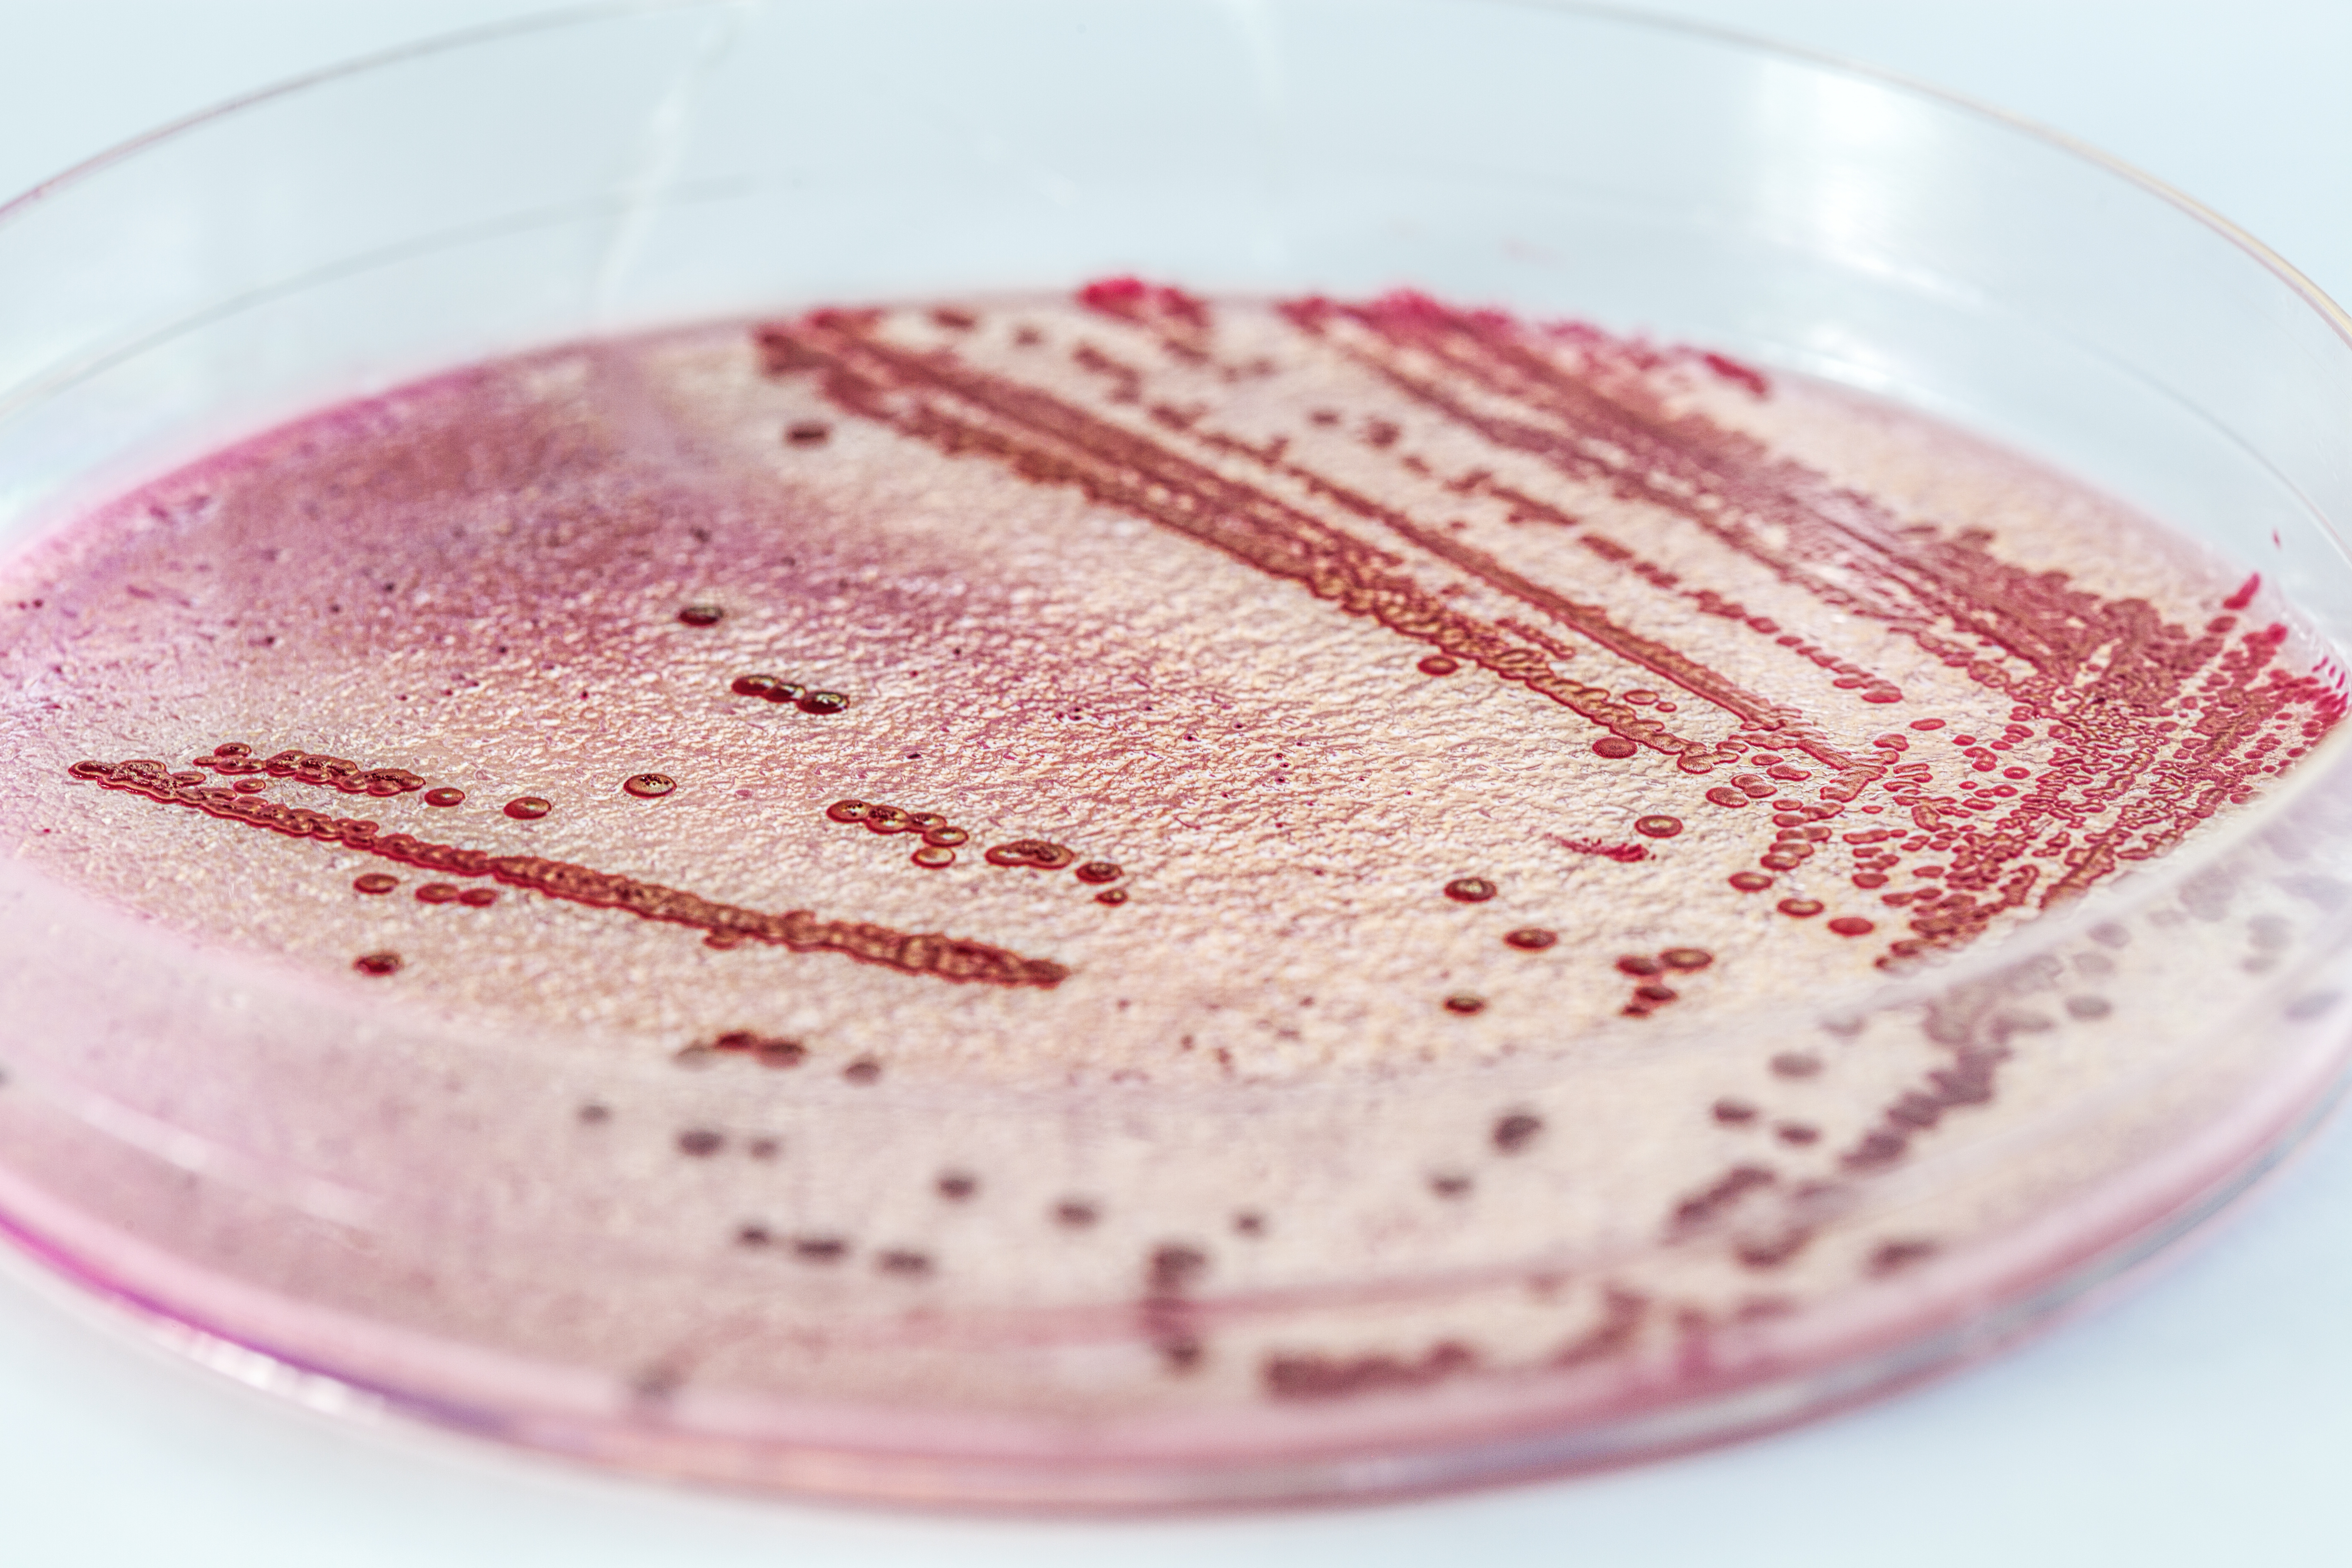 Microbial Identifications